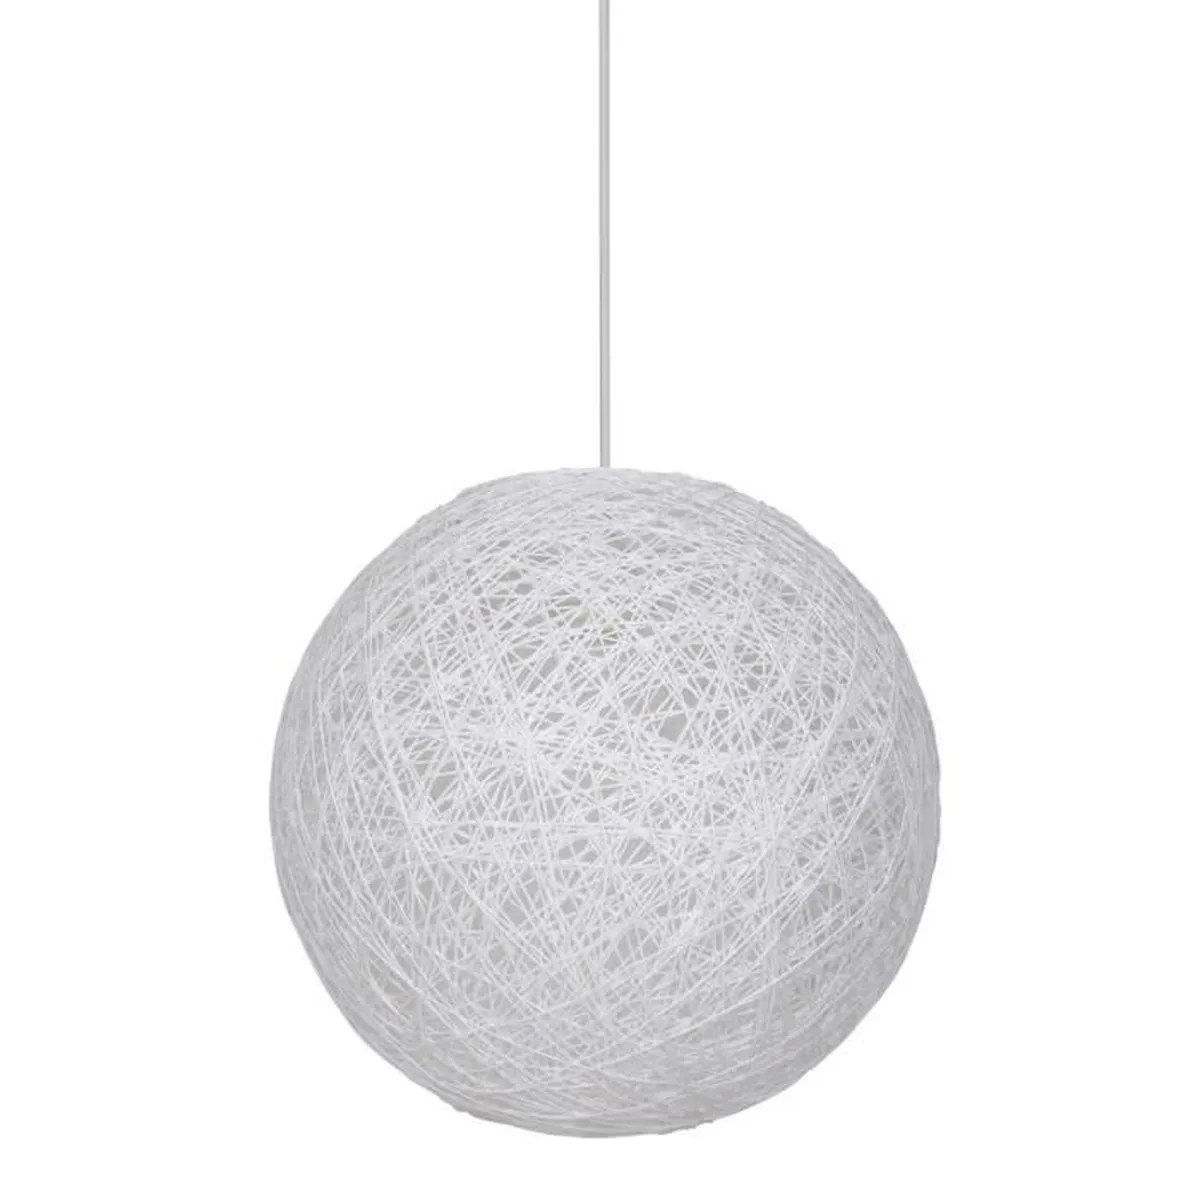 Suspension Tressee Suspension Moon Boule Ficelle Tressée 34 Cm Blanc Achat Vente